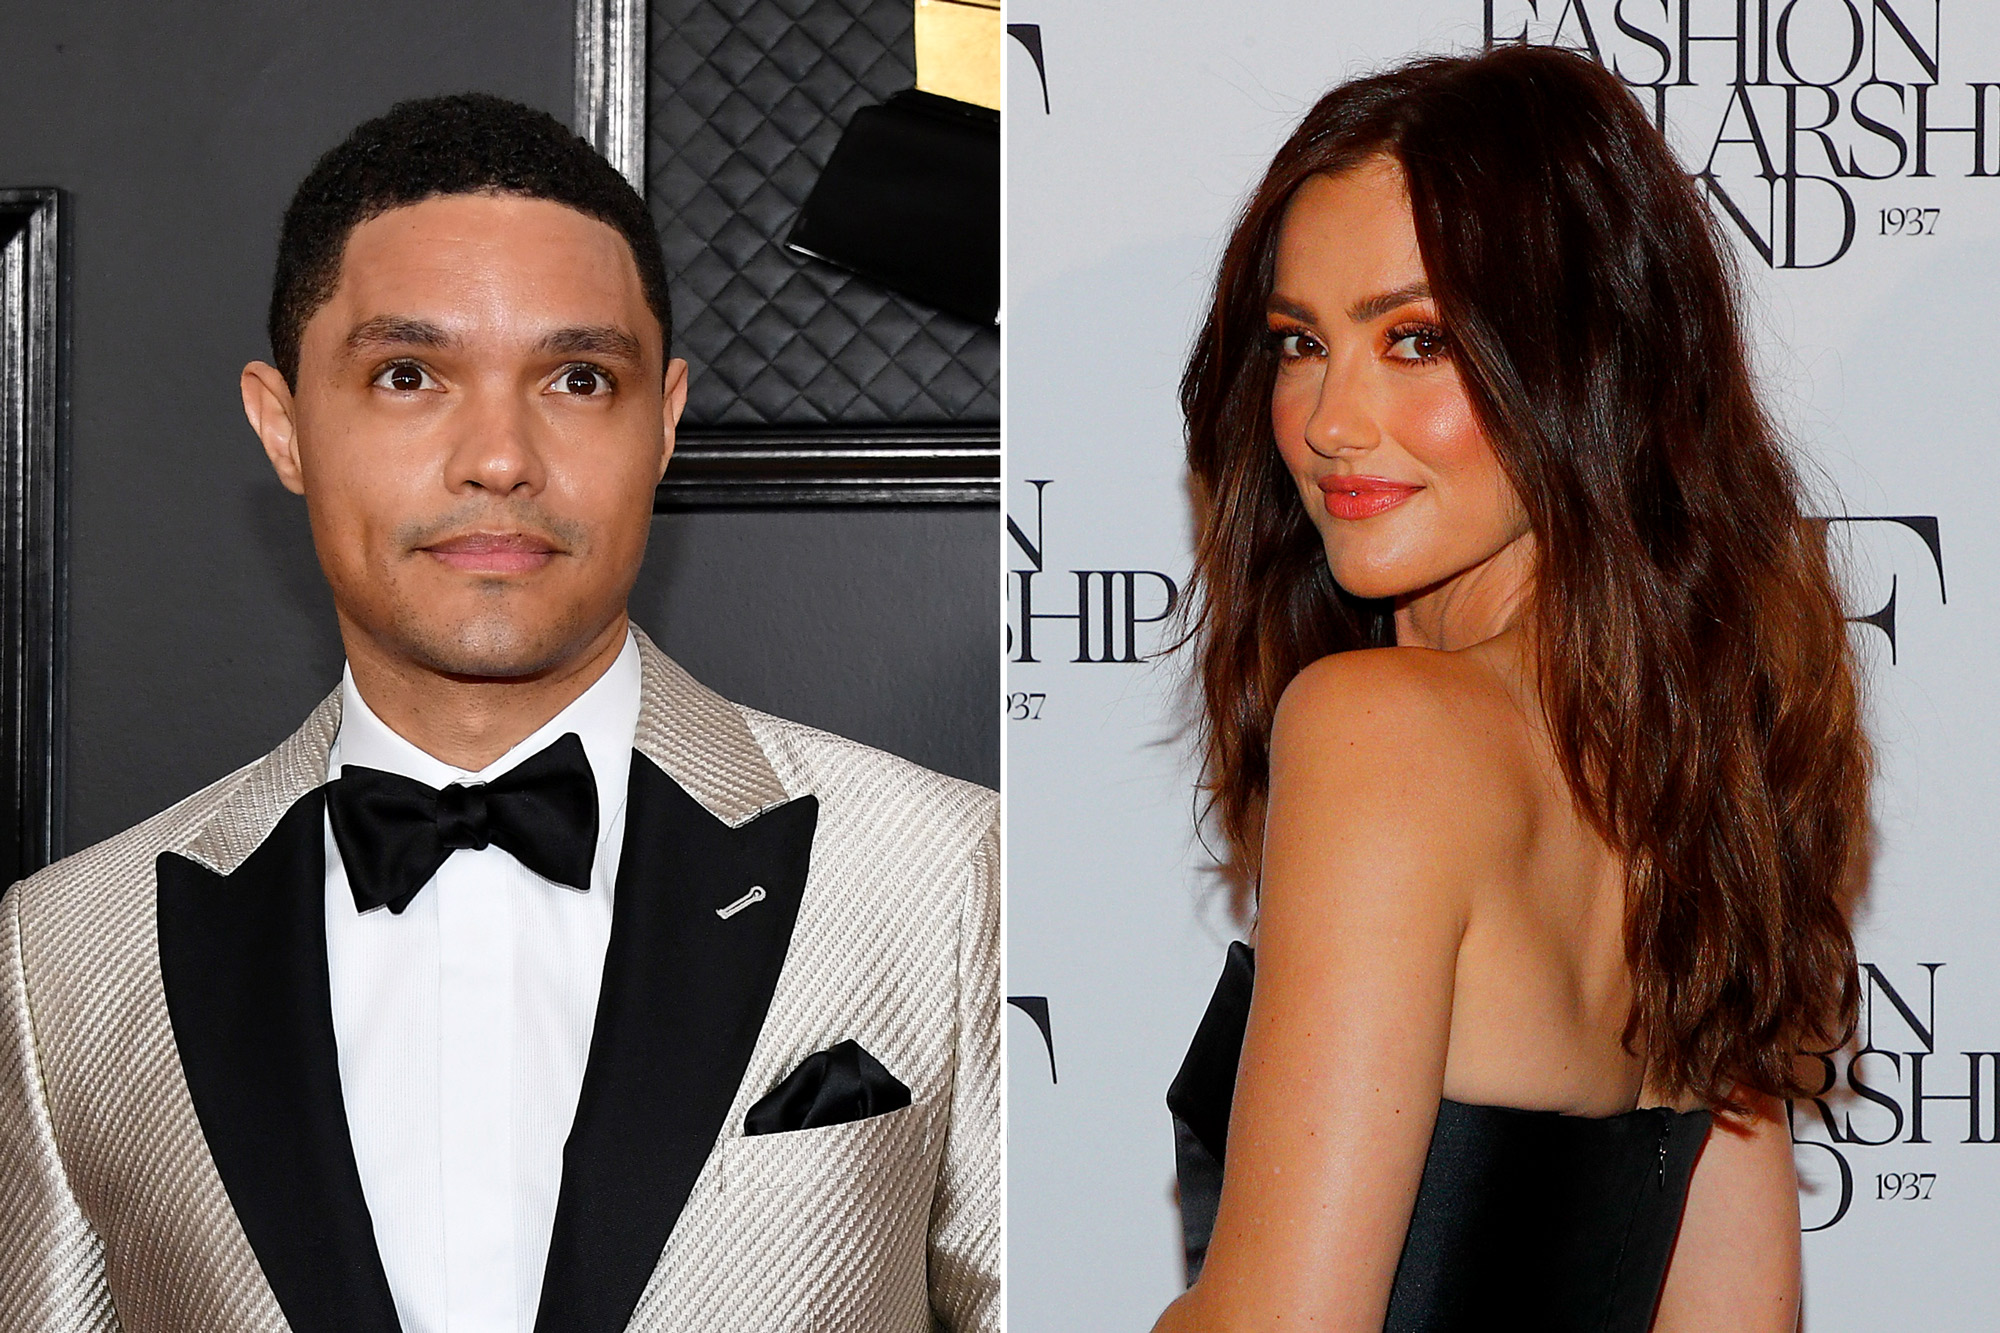 Trevor Noah and Minka Kelly Aren't Instagram Official, But They *Are* In-N-Out Official!!!